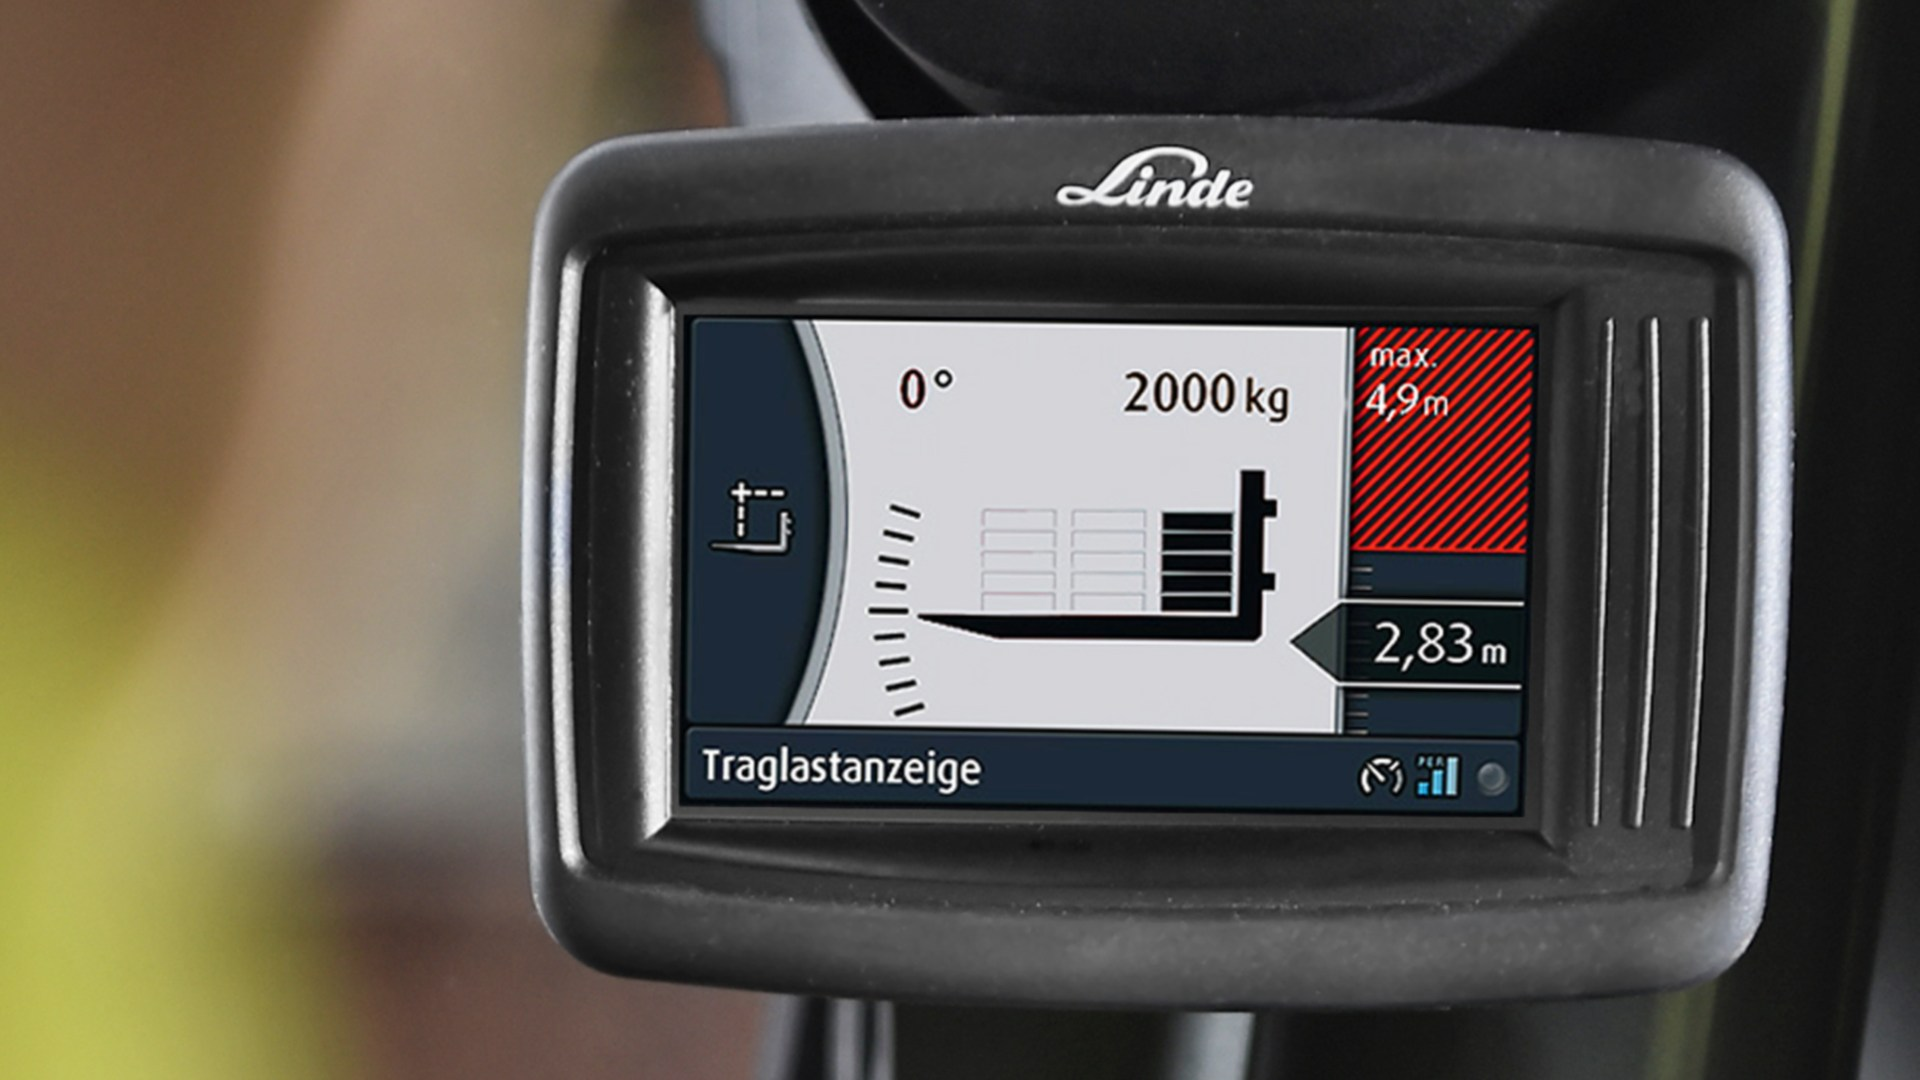 Display of the Linde Safety Pilot